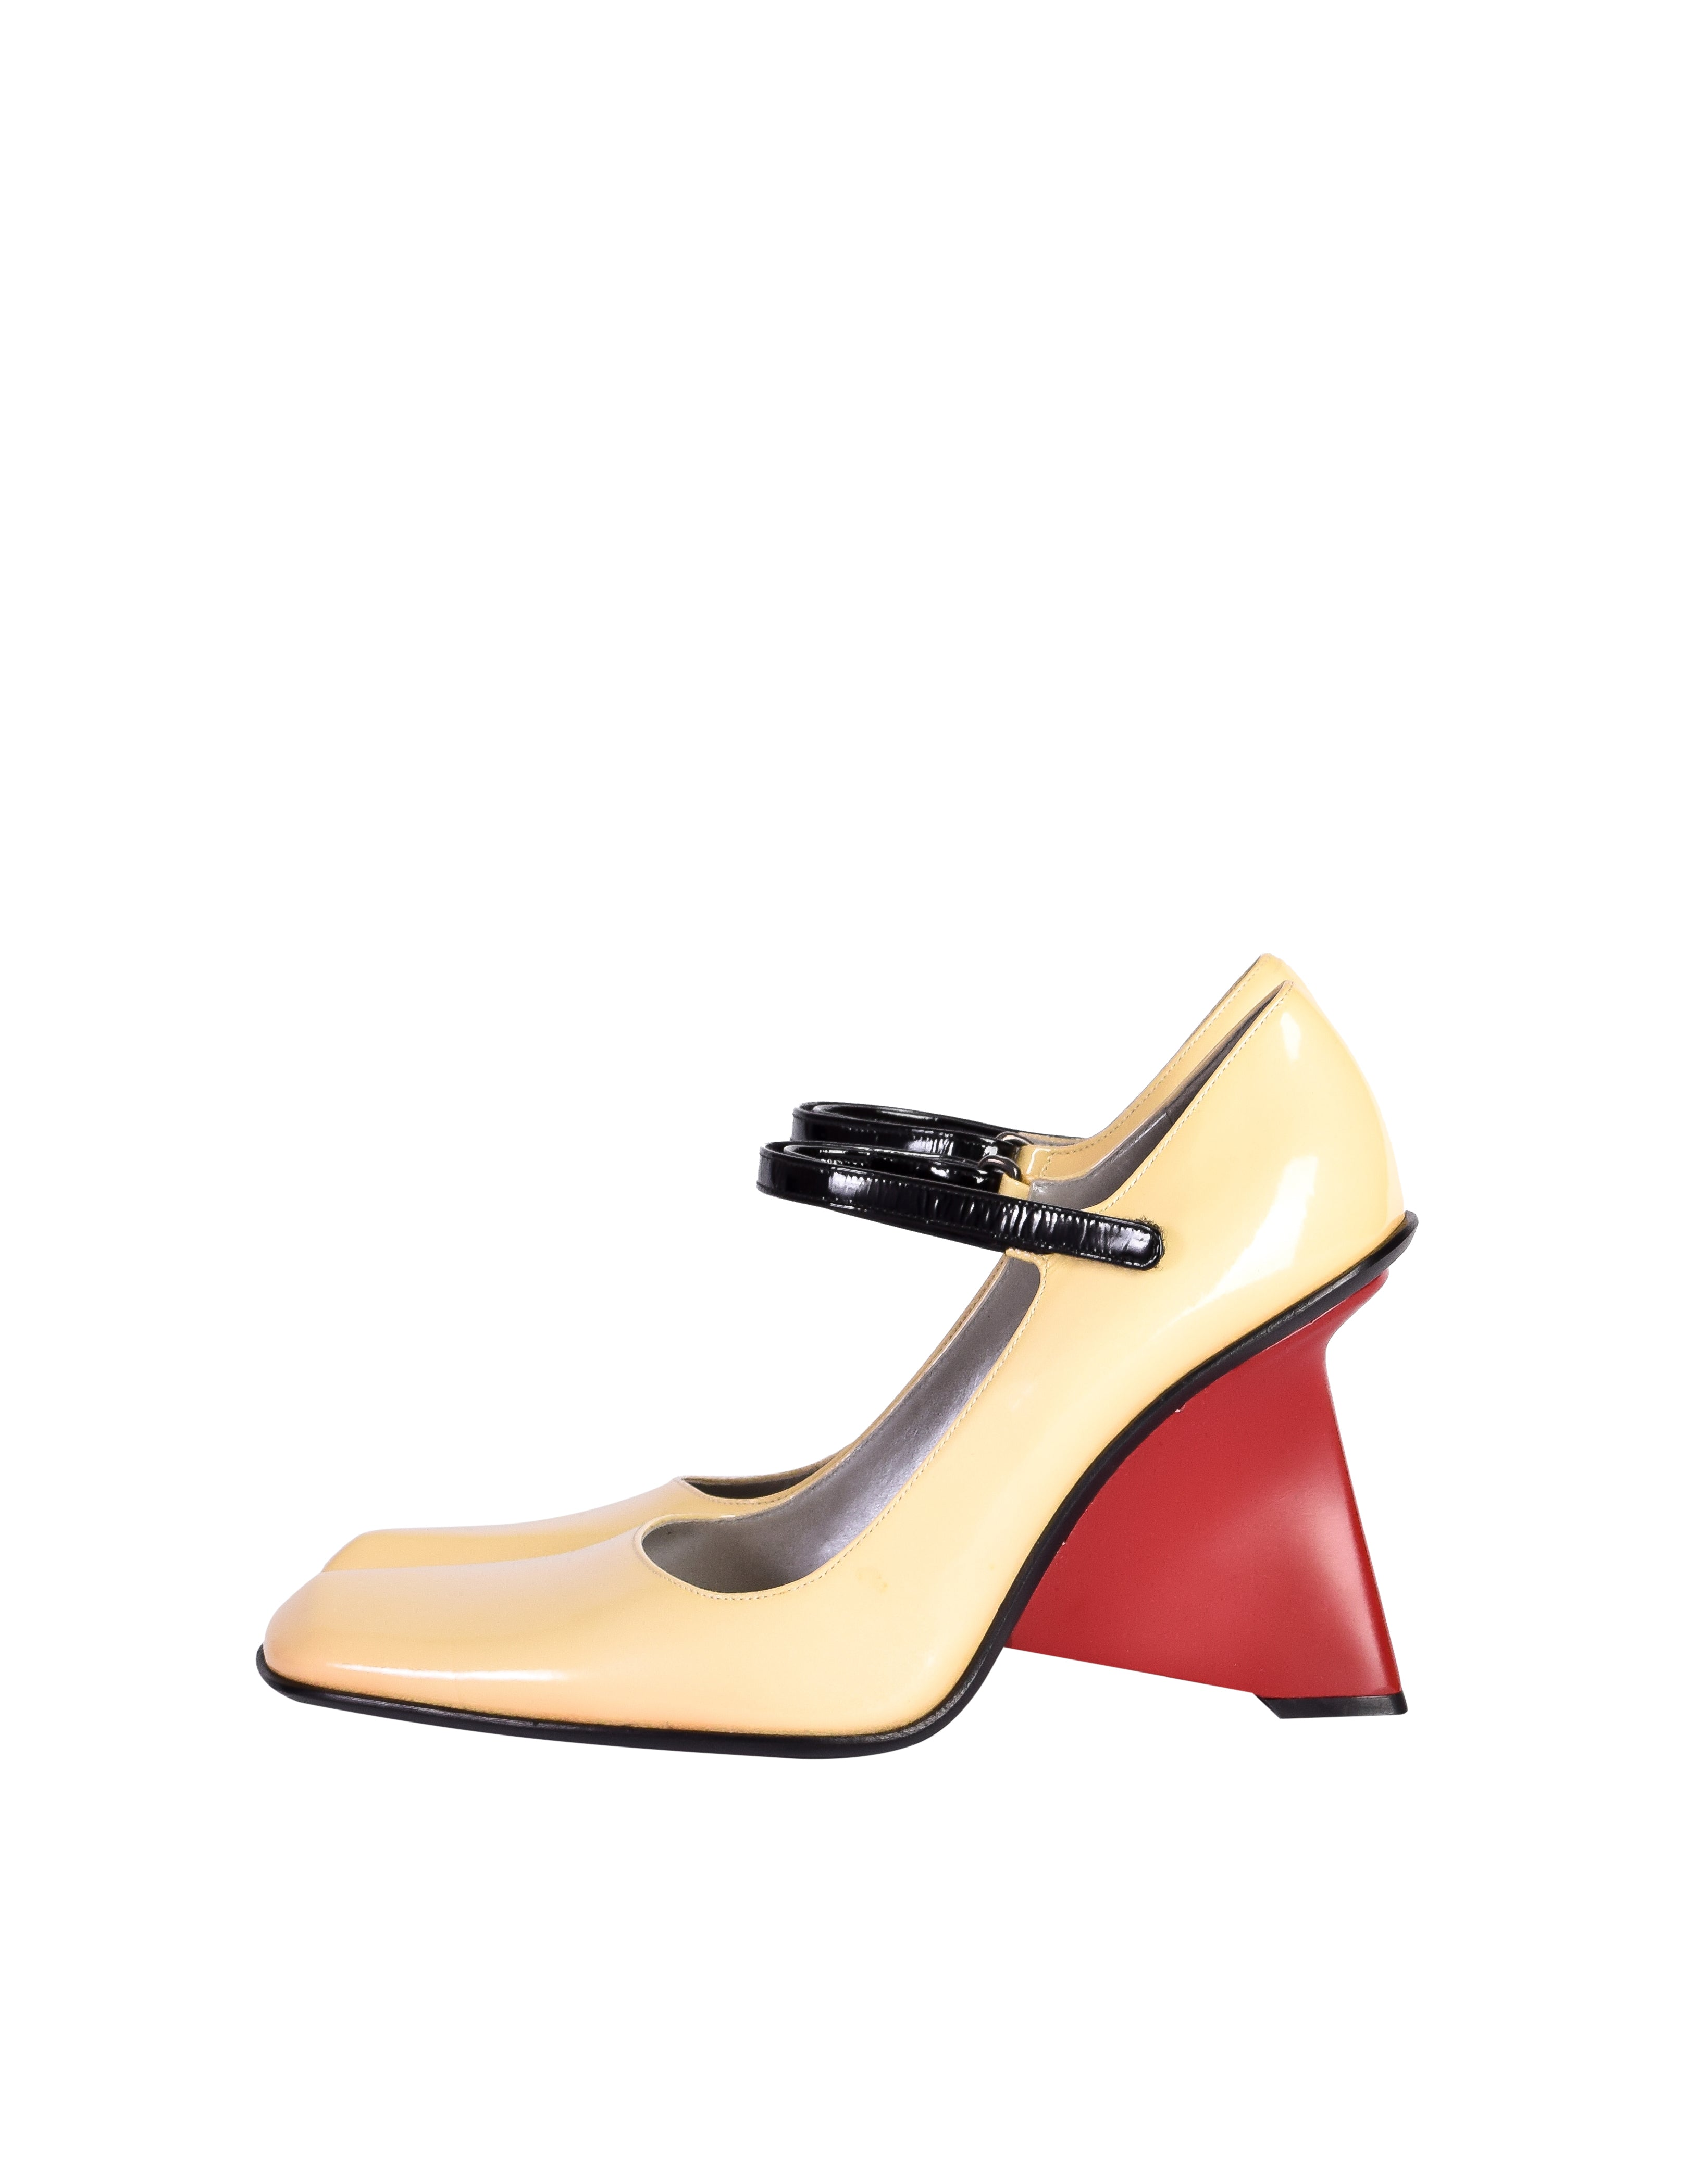 Prada Vintage 1998 Cream Black Red Mary Jane Patent Leather Sculpted Wedge Heels Shoes